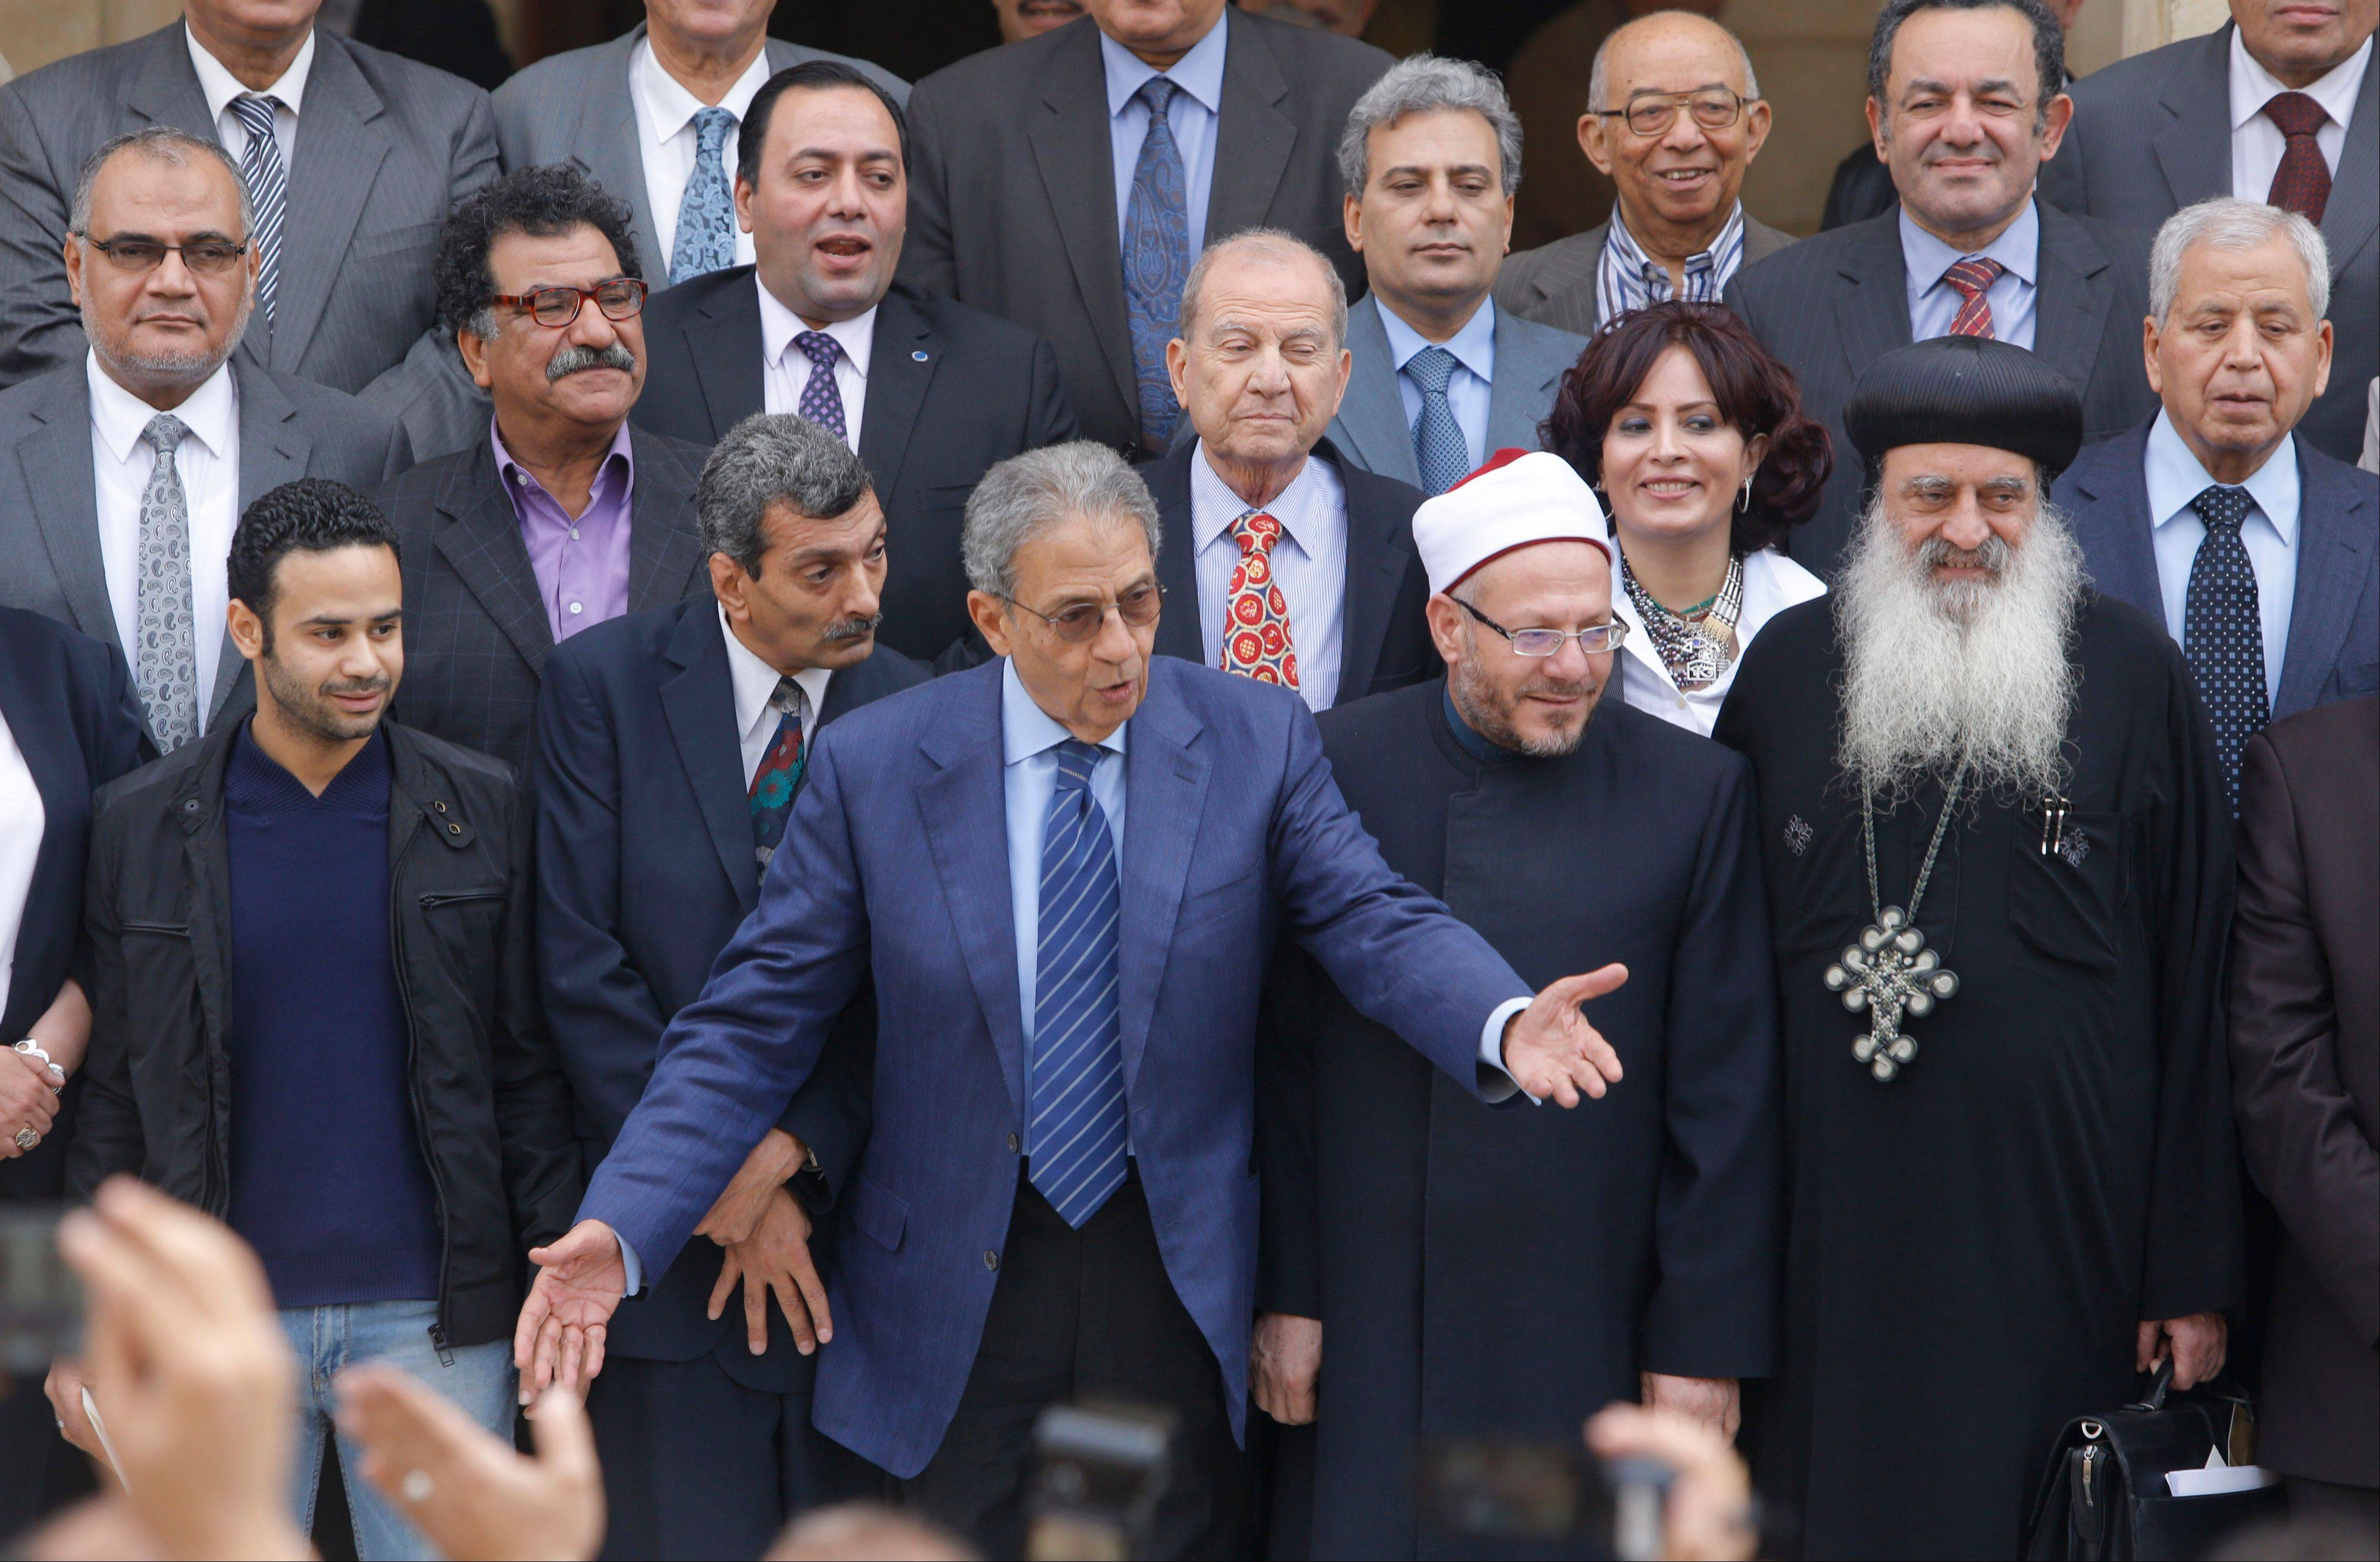 Amr Moussa, center, chairman of Egypt's 50-member panel tasked with amending Egypt's Islamist-drafted constitution, arranges the members for a group picture after finishing the final draft of a series of constitutional amendments at the Shoura Council in Cairo on Monday.